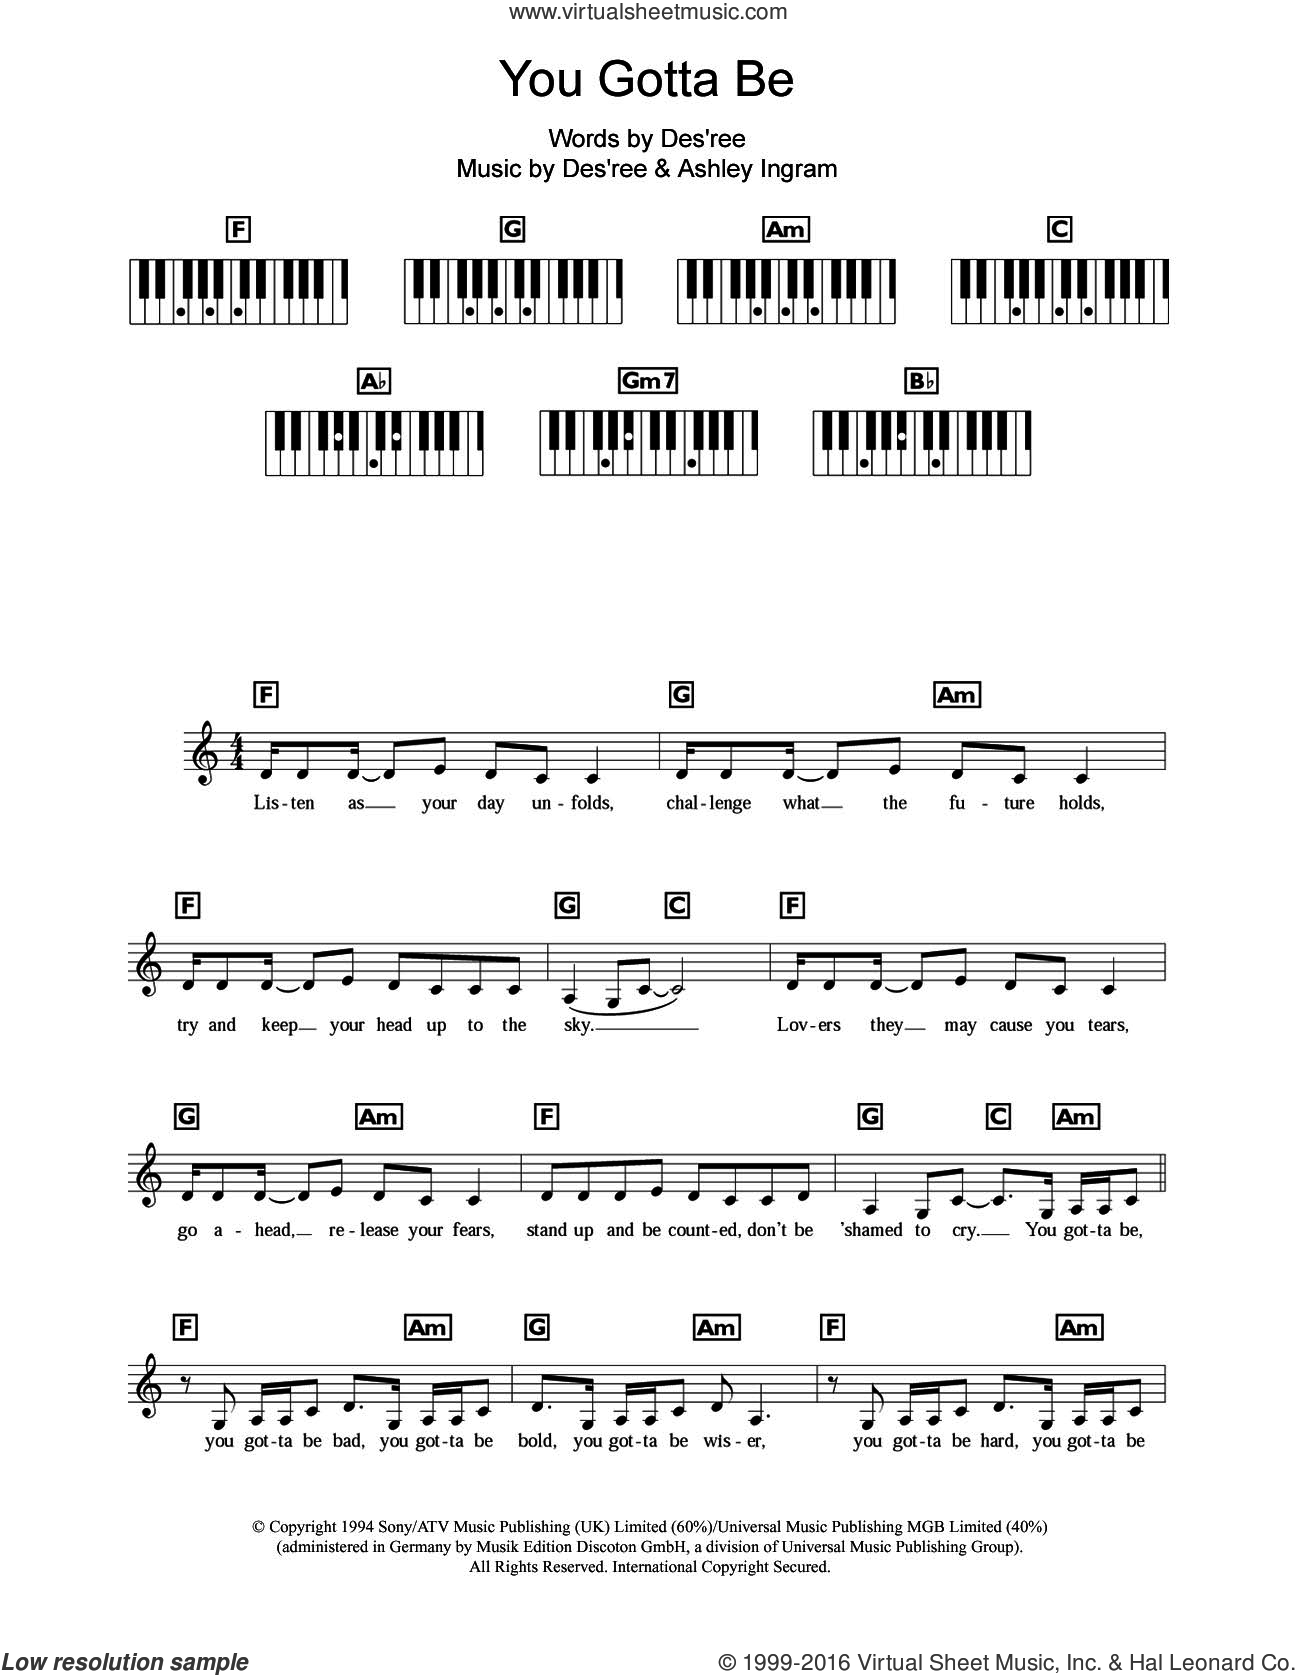 You Gotta Be sheet music for piano solo (chords, lyrics, melody) by Ashley Ingram. Score Image Preview.